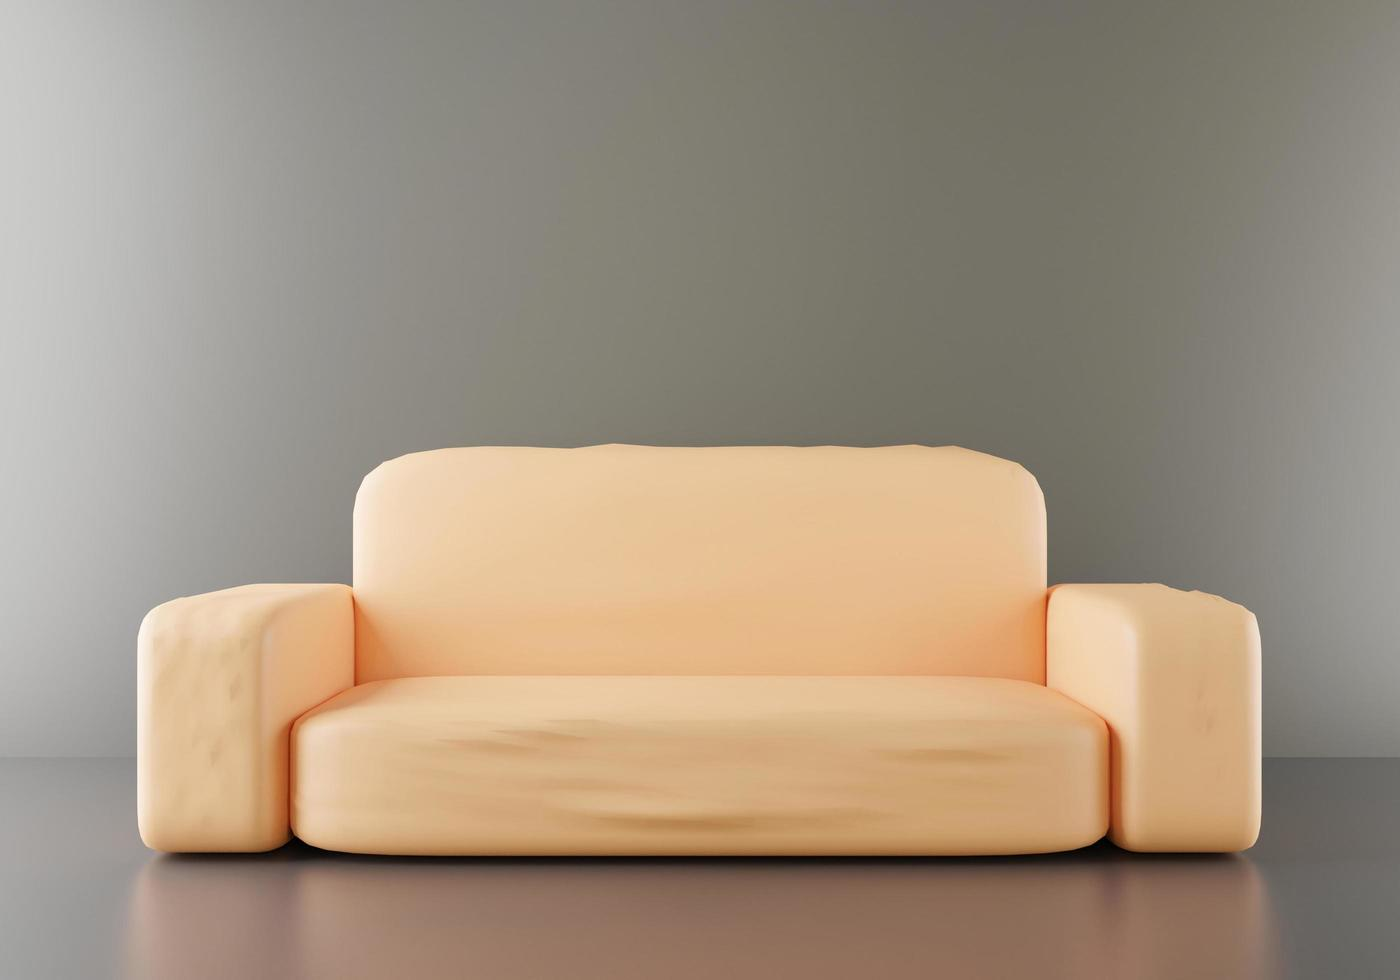 One isolated couch sofa bed in room premium color background, Sofa orange color front composition, 3d Rendering illustration for web page presentation photo